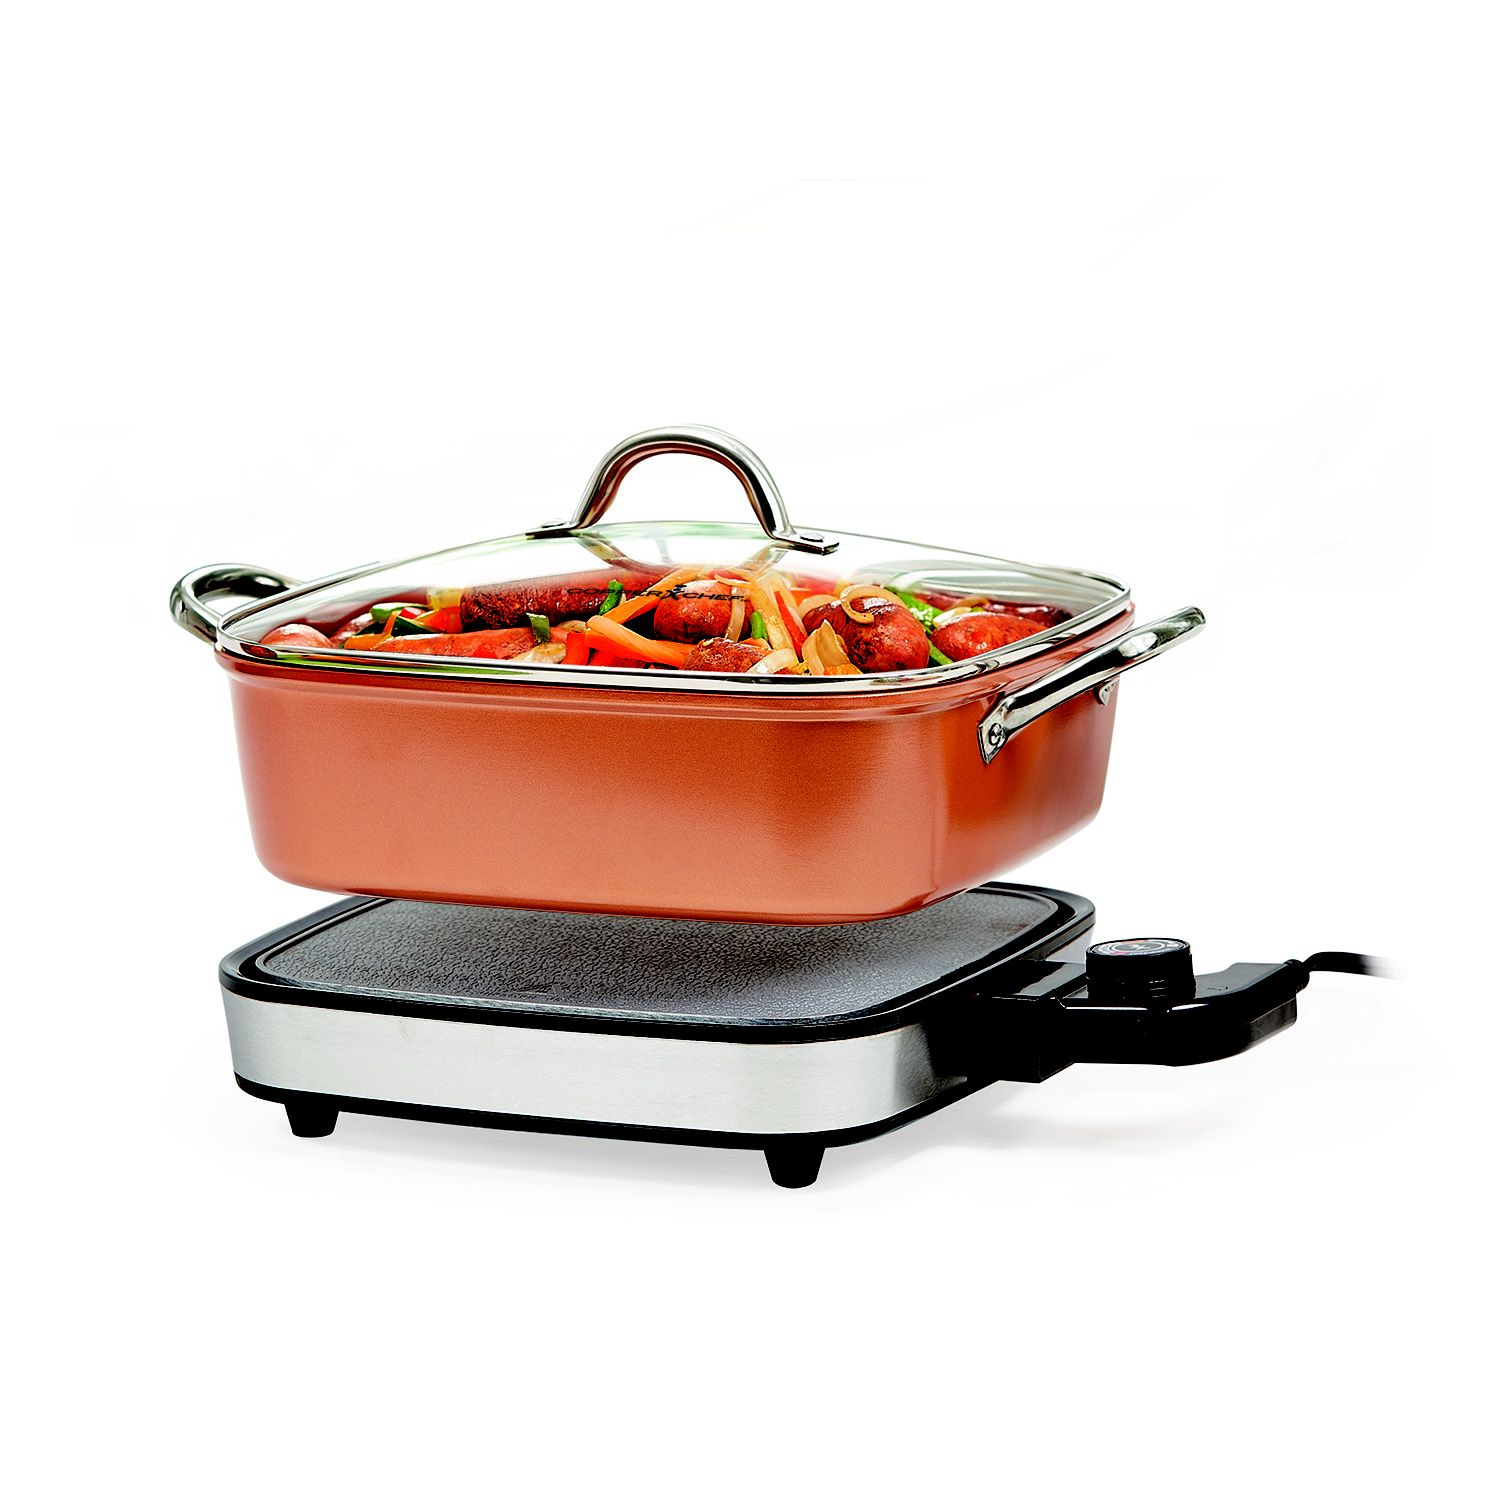 "Copper Chef 12"" Removable 2-Piece Electric Skillet Use as a Skillet, Buffet Server and in The Oven"